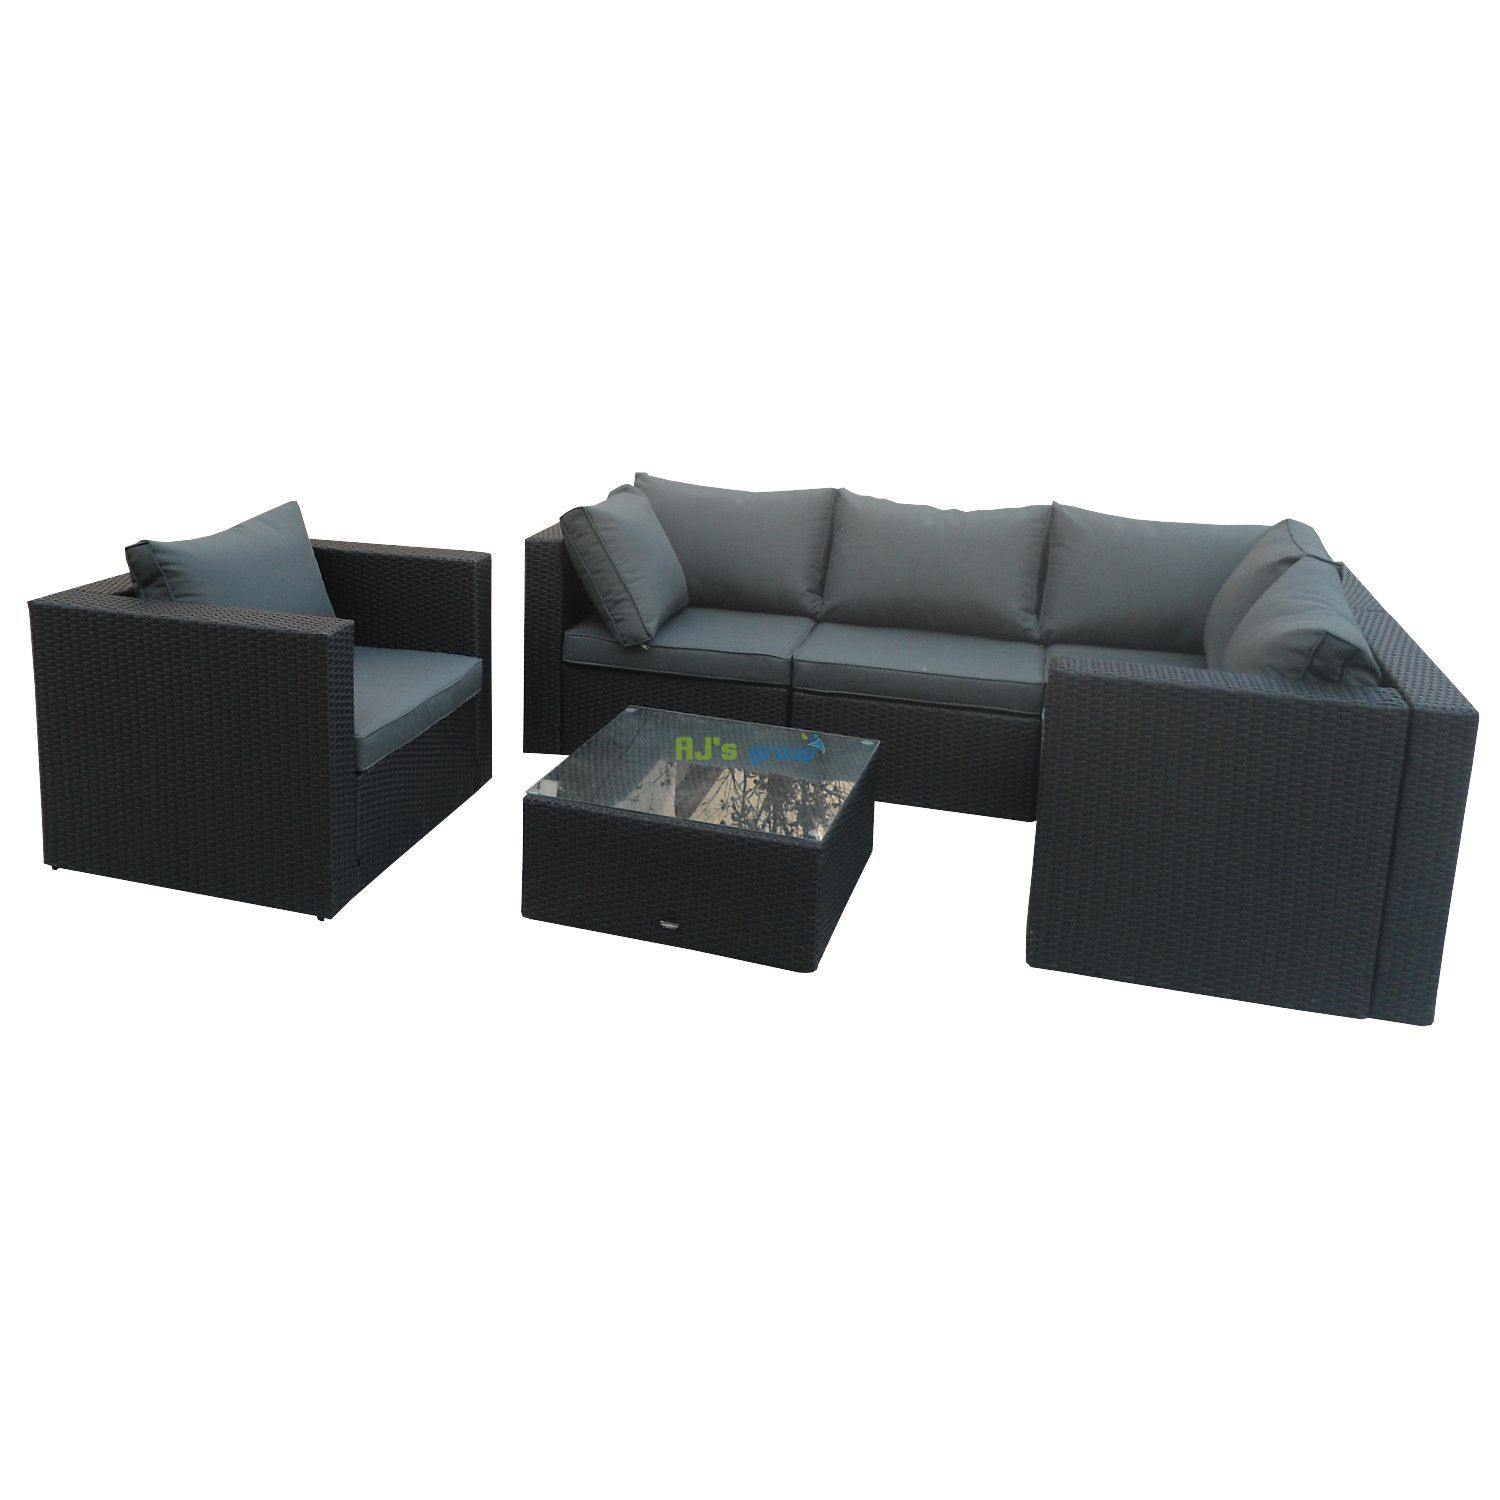 poly rattan gartenm bel kansas alu garnitur lounge garten sitzgruppe gartenset. Black Bedroom Furniture Sets. Home Design Ideas